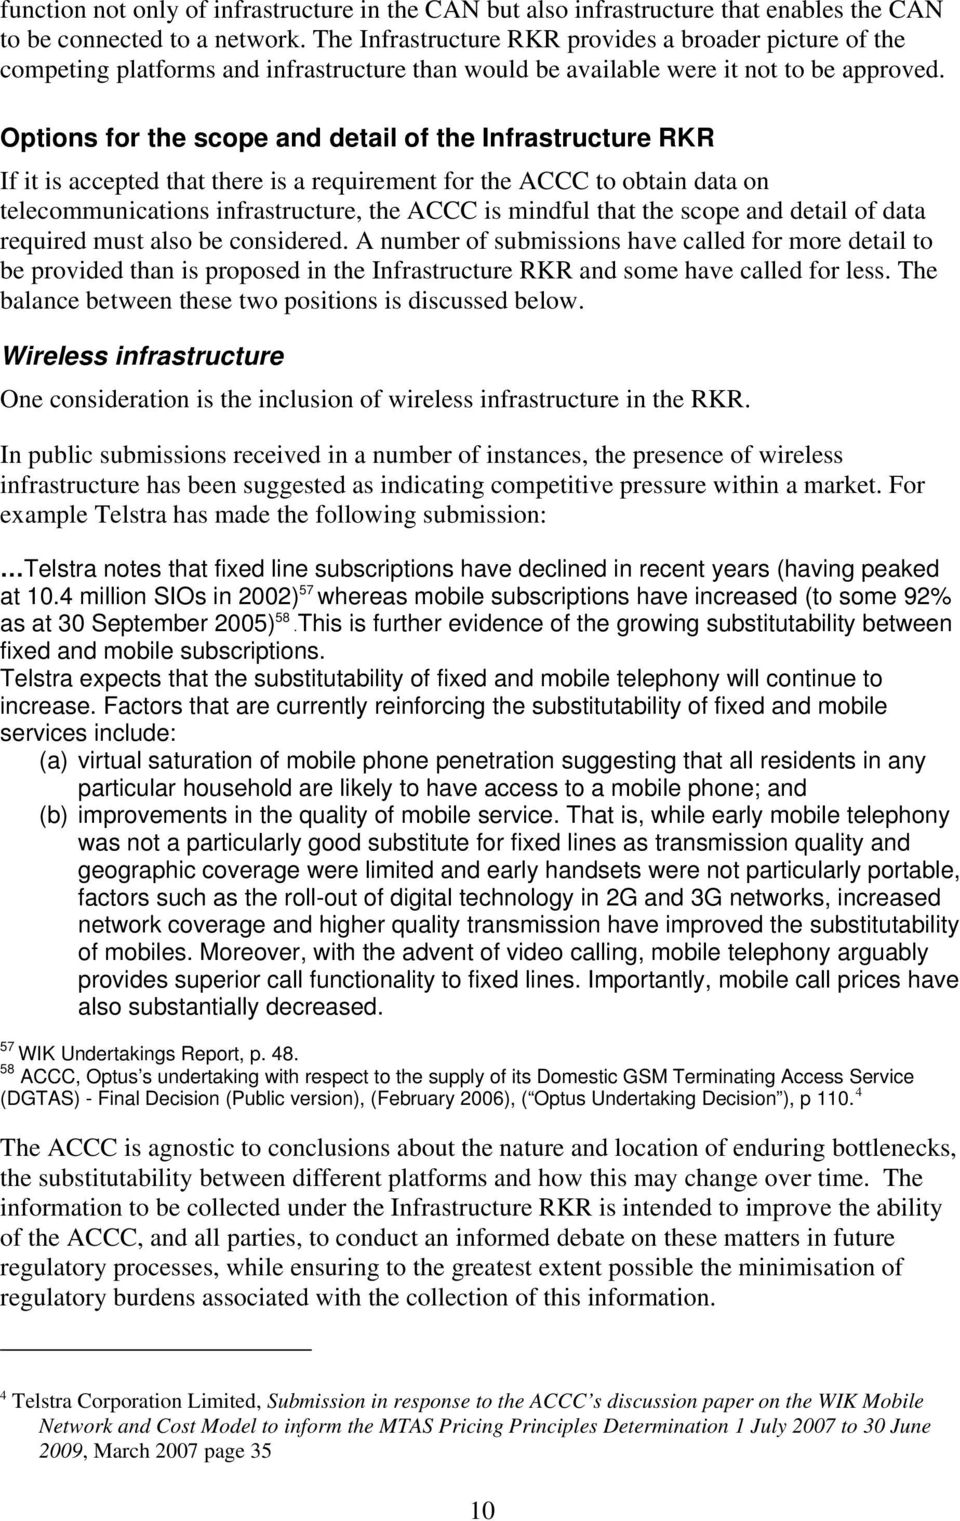 Options for the scope and detail of the Infrastructure RKR If it is accepted that there is a requirement for the ACCC to obtain data on telecommunications infrastructure, the ACCC is mindful that the